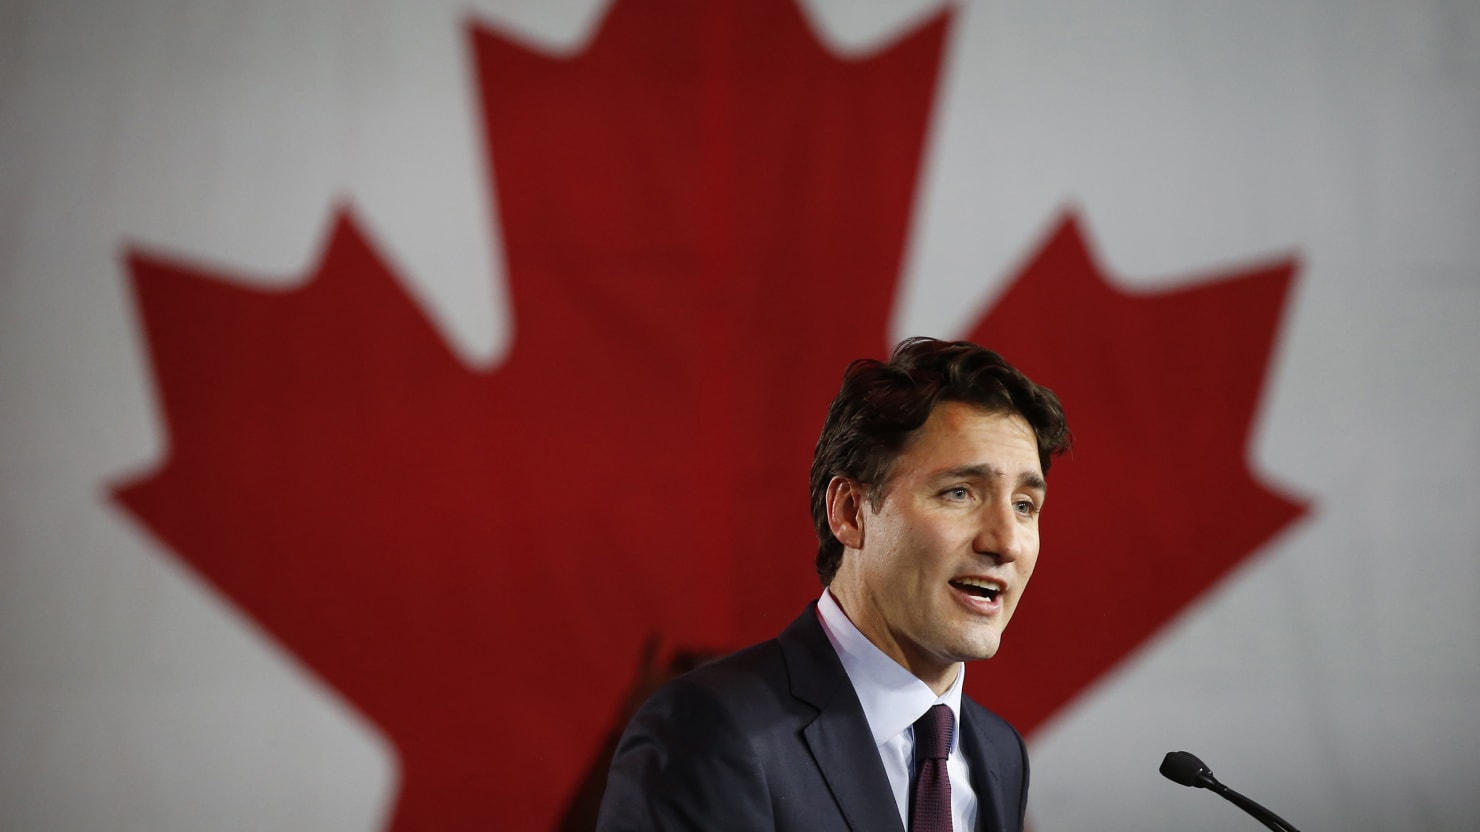 Trudeau Is Less Liberal Than You Think